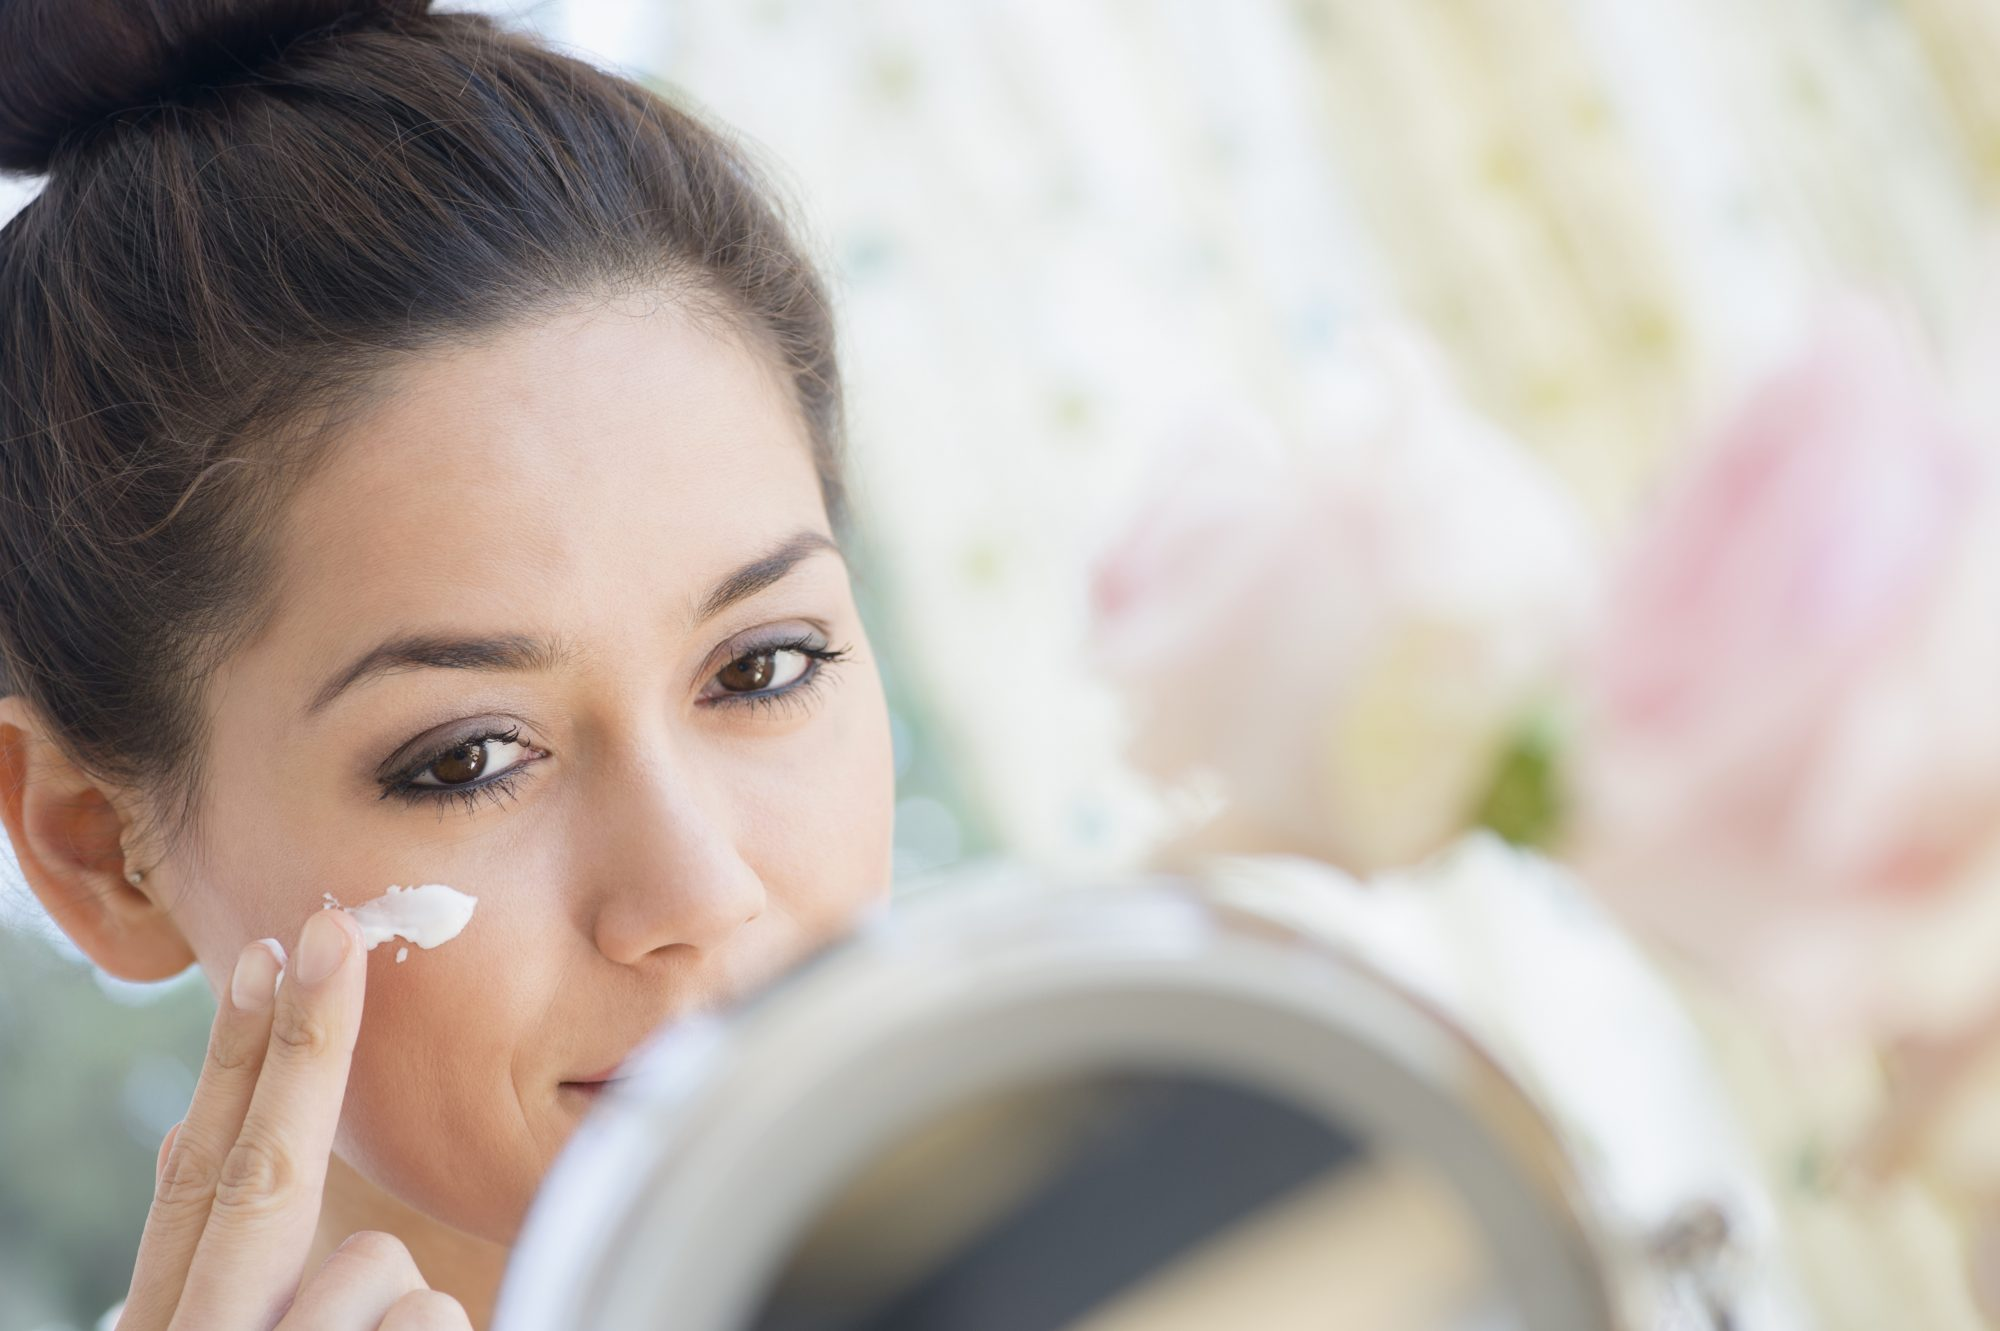 Myth: I don't need to wear sunscreen outside because I wear makeup